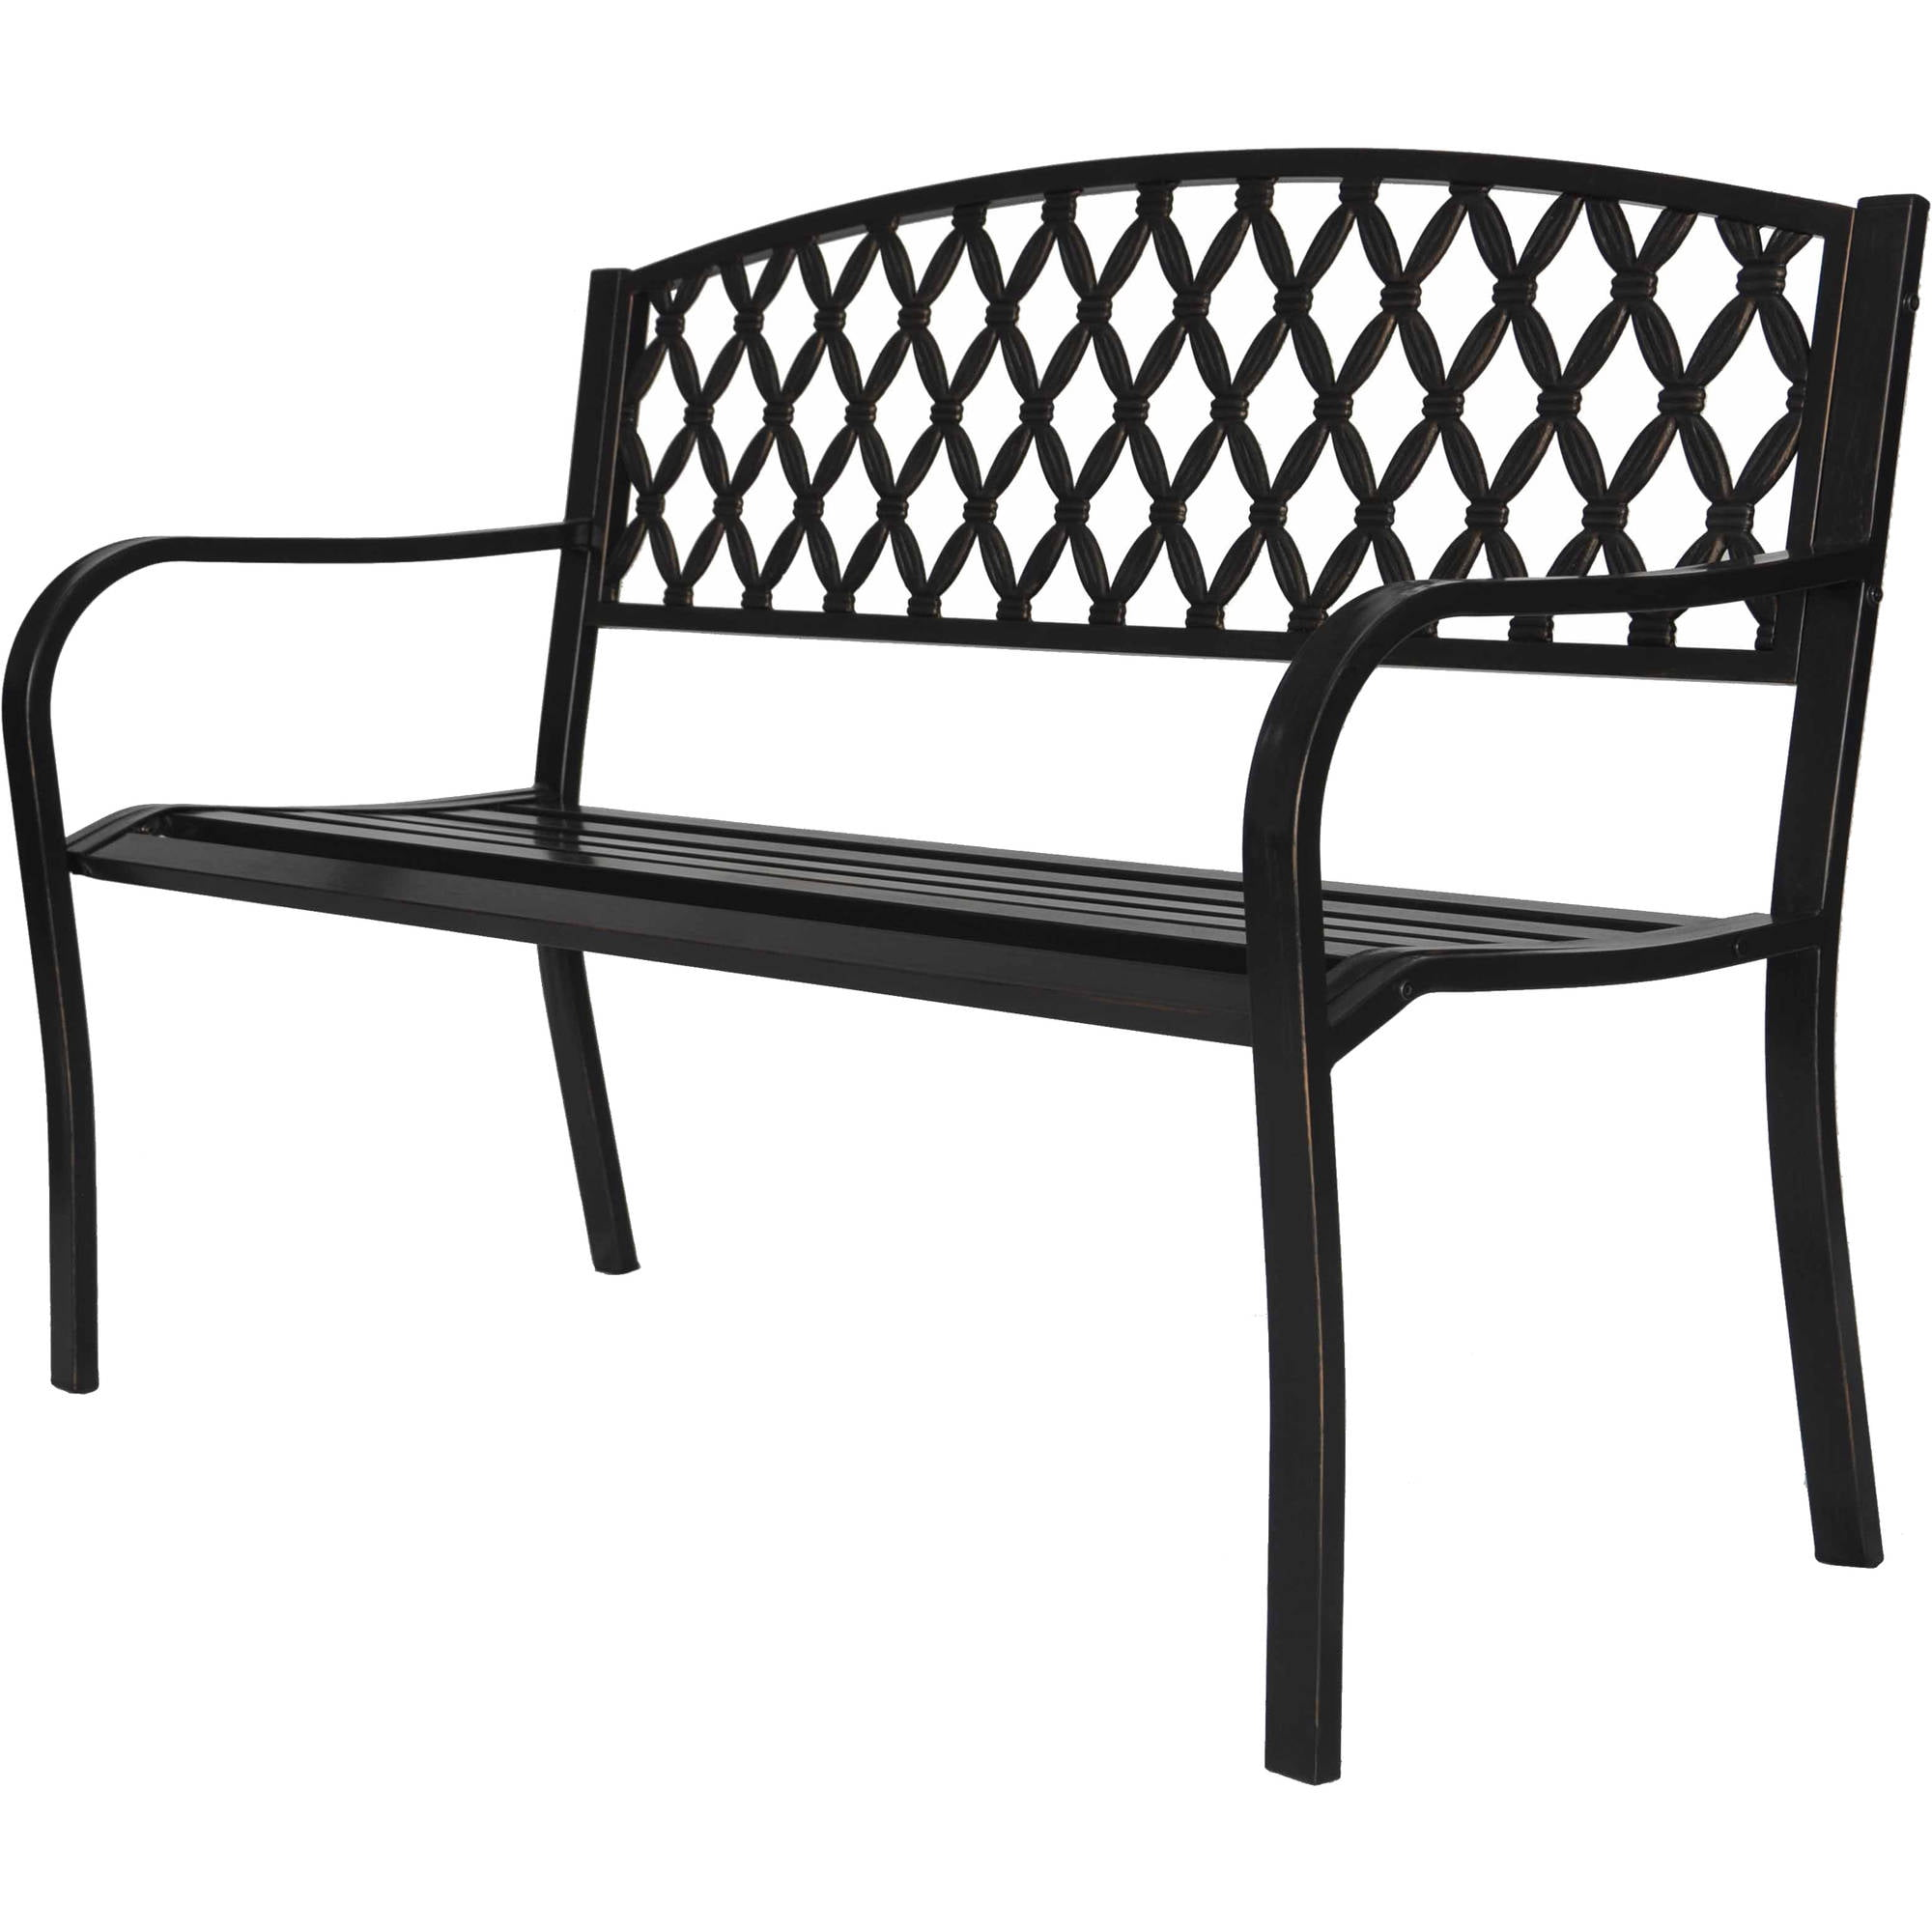 outdoor park bench 4 ft. metal - walmart